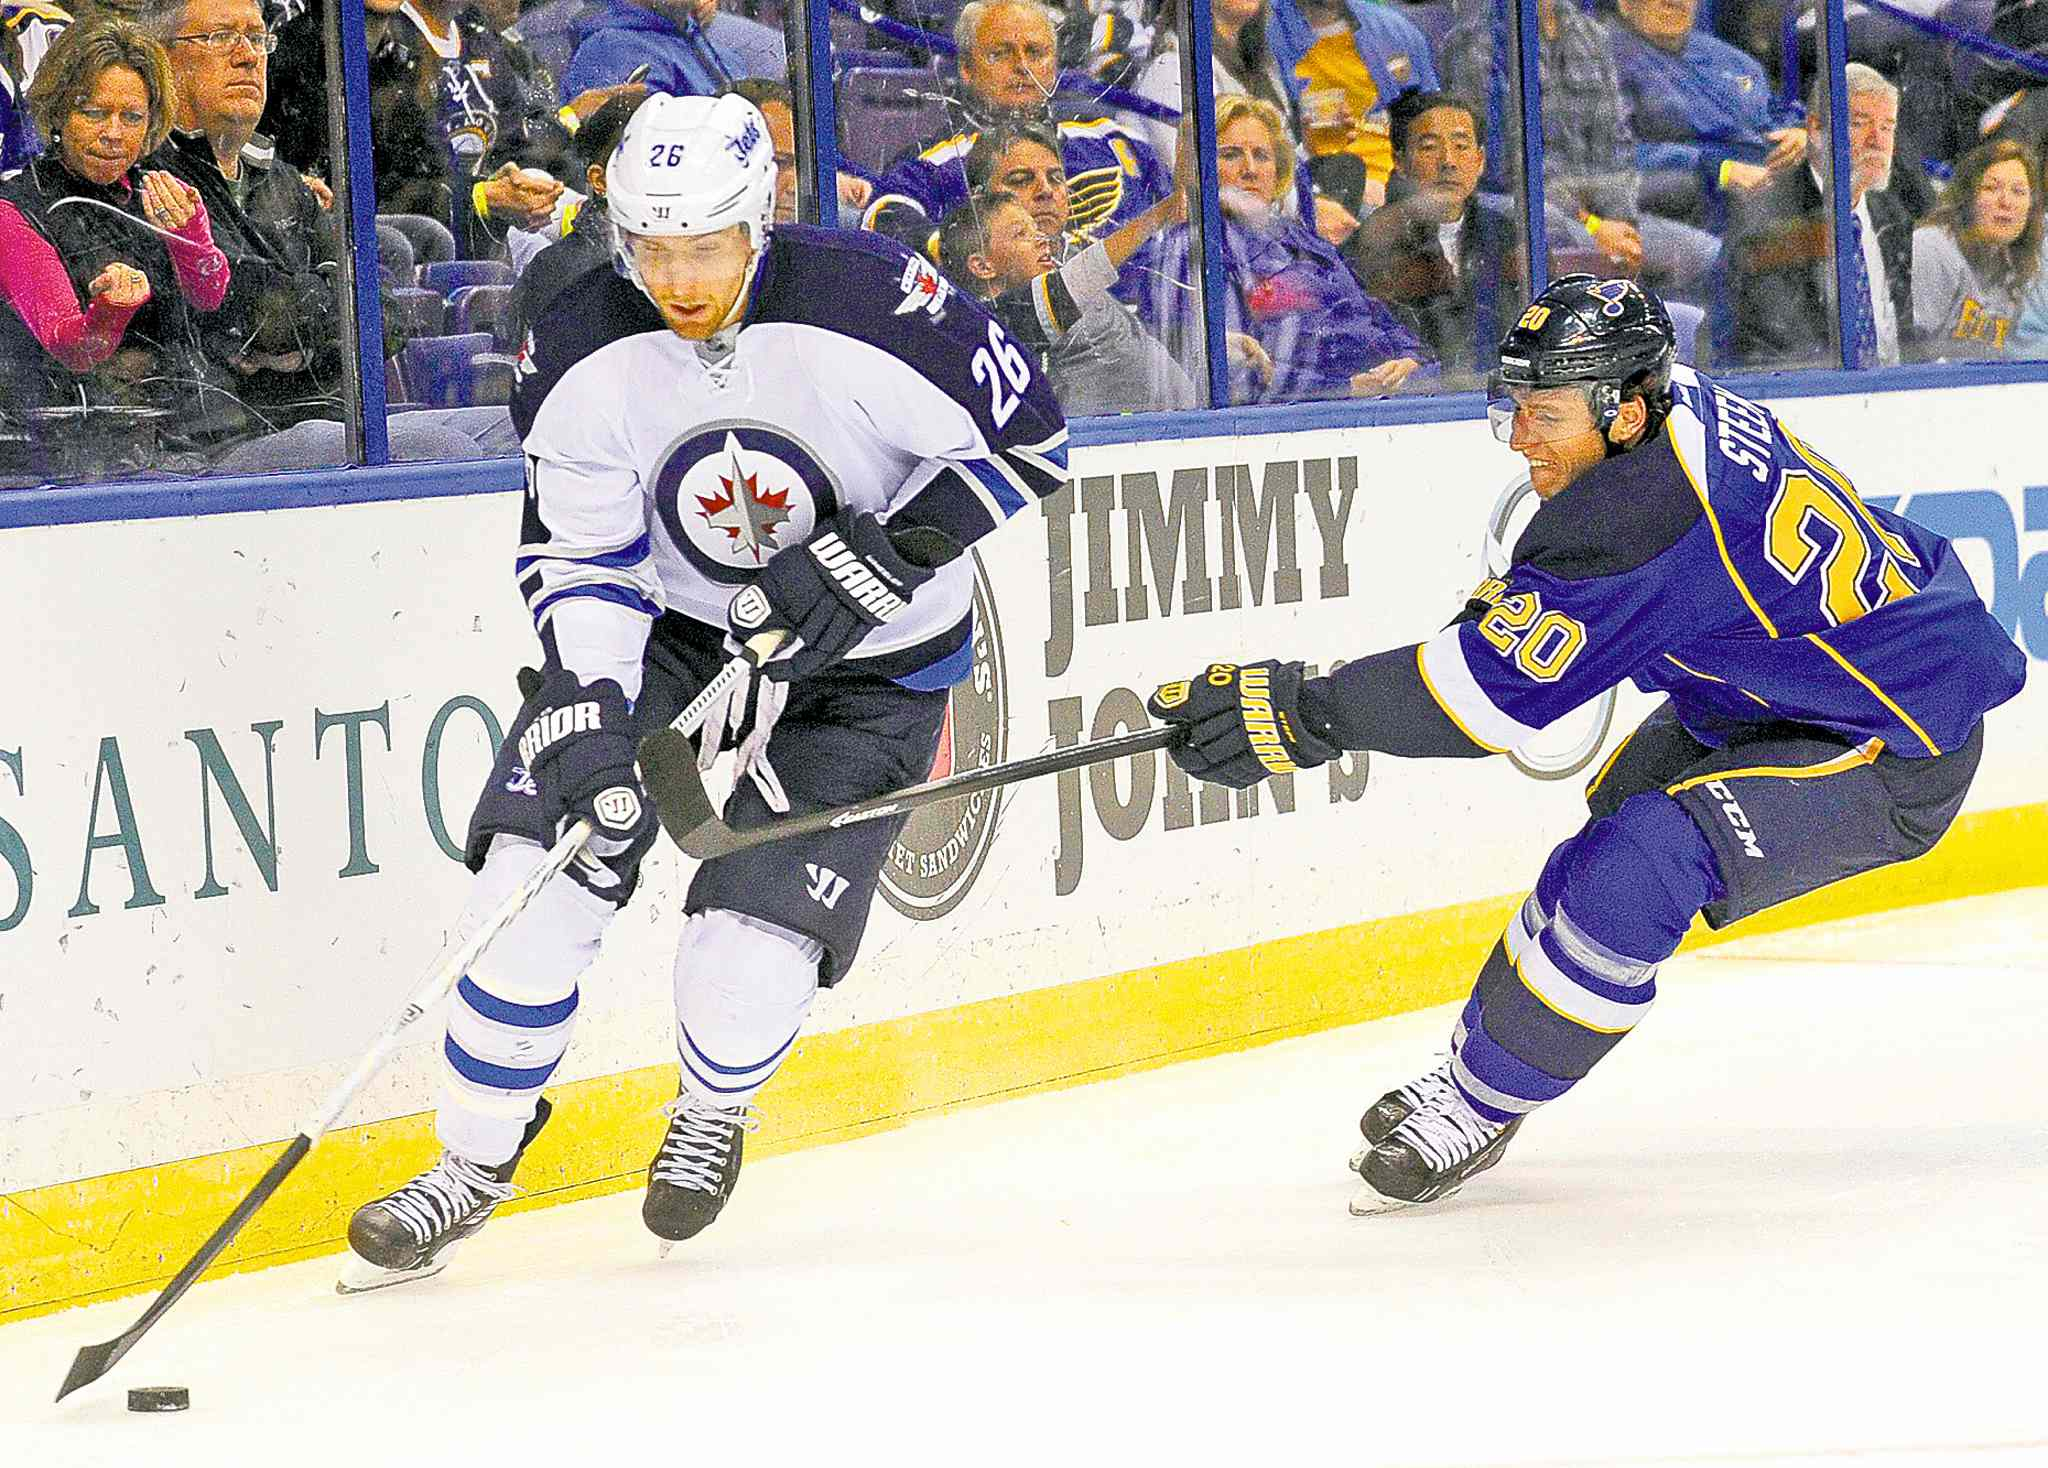 To find the Jets' last power-play goal, you have to go back to Oct. 29 in St. Louis, where Blake Wheeler (seen skating around Alex Steen) scored.